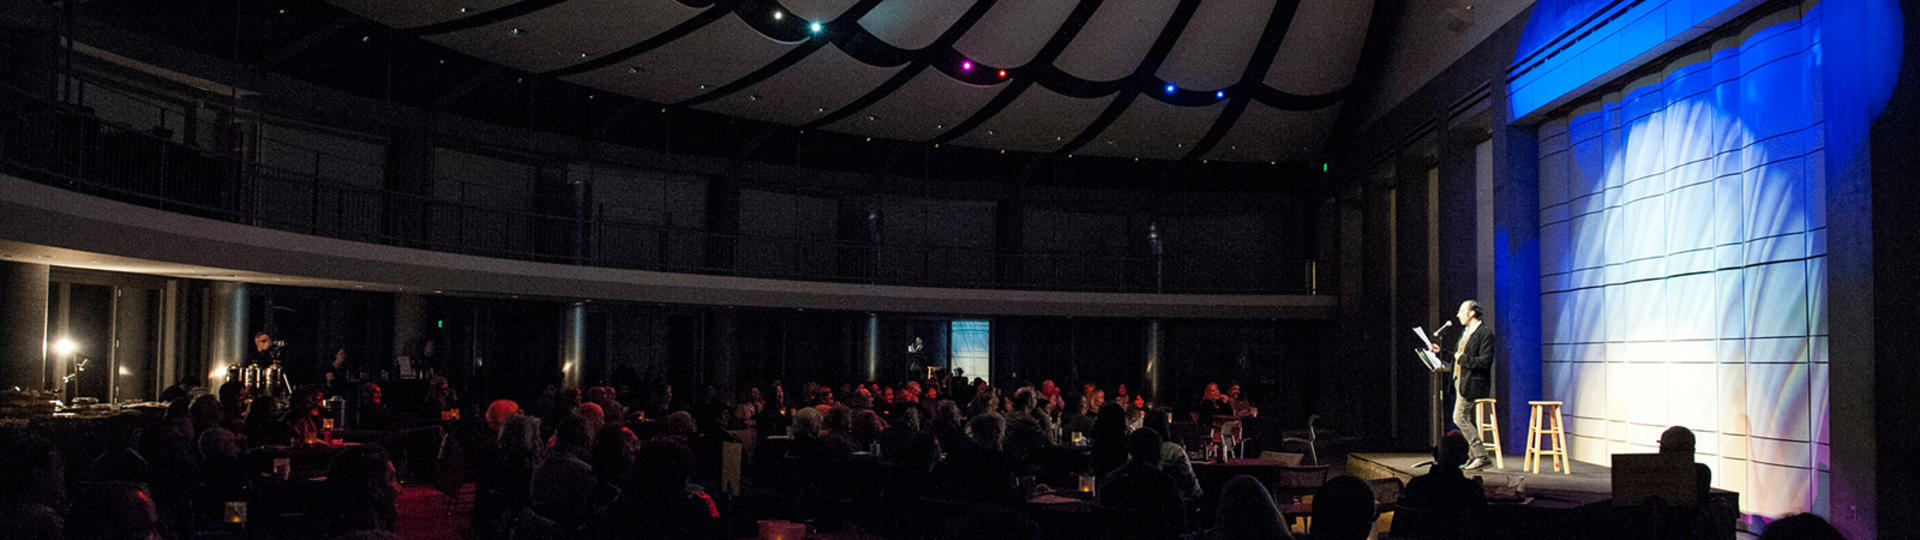 People enjoying a comedy show at Skirball Cultural Center.